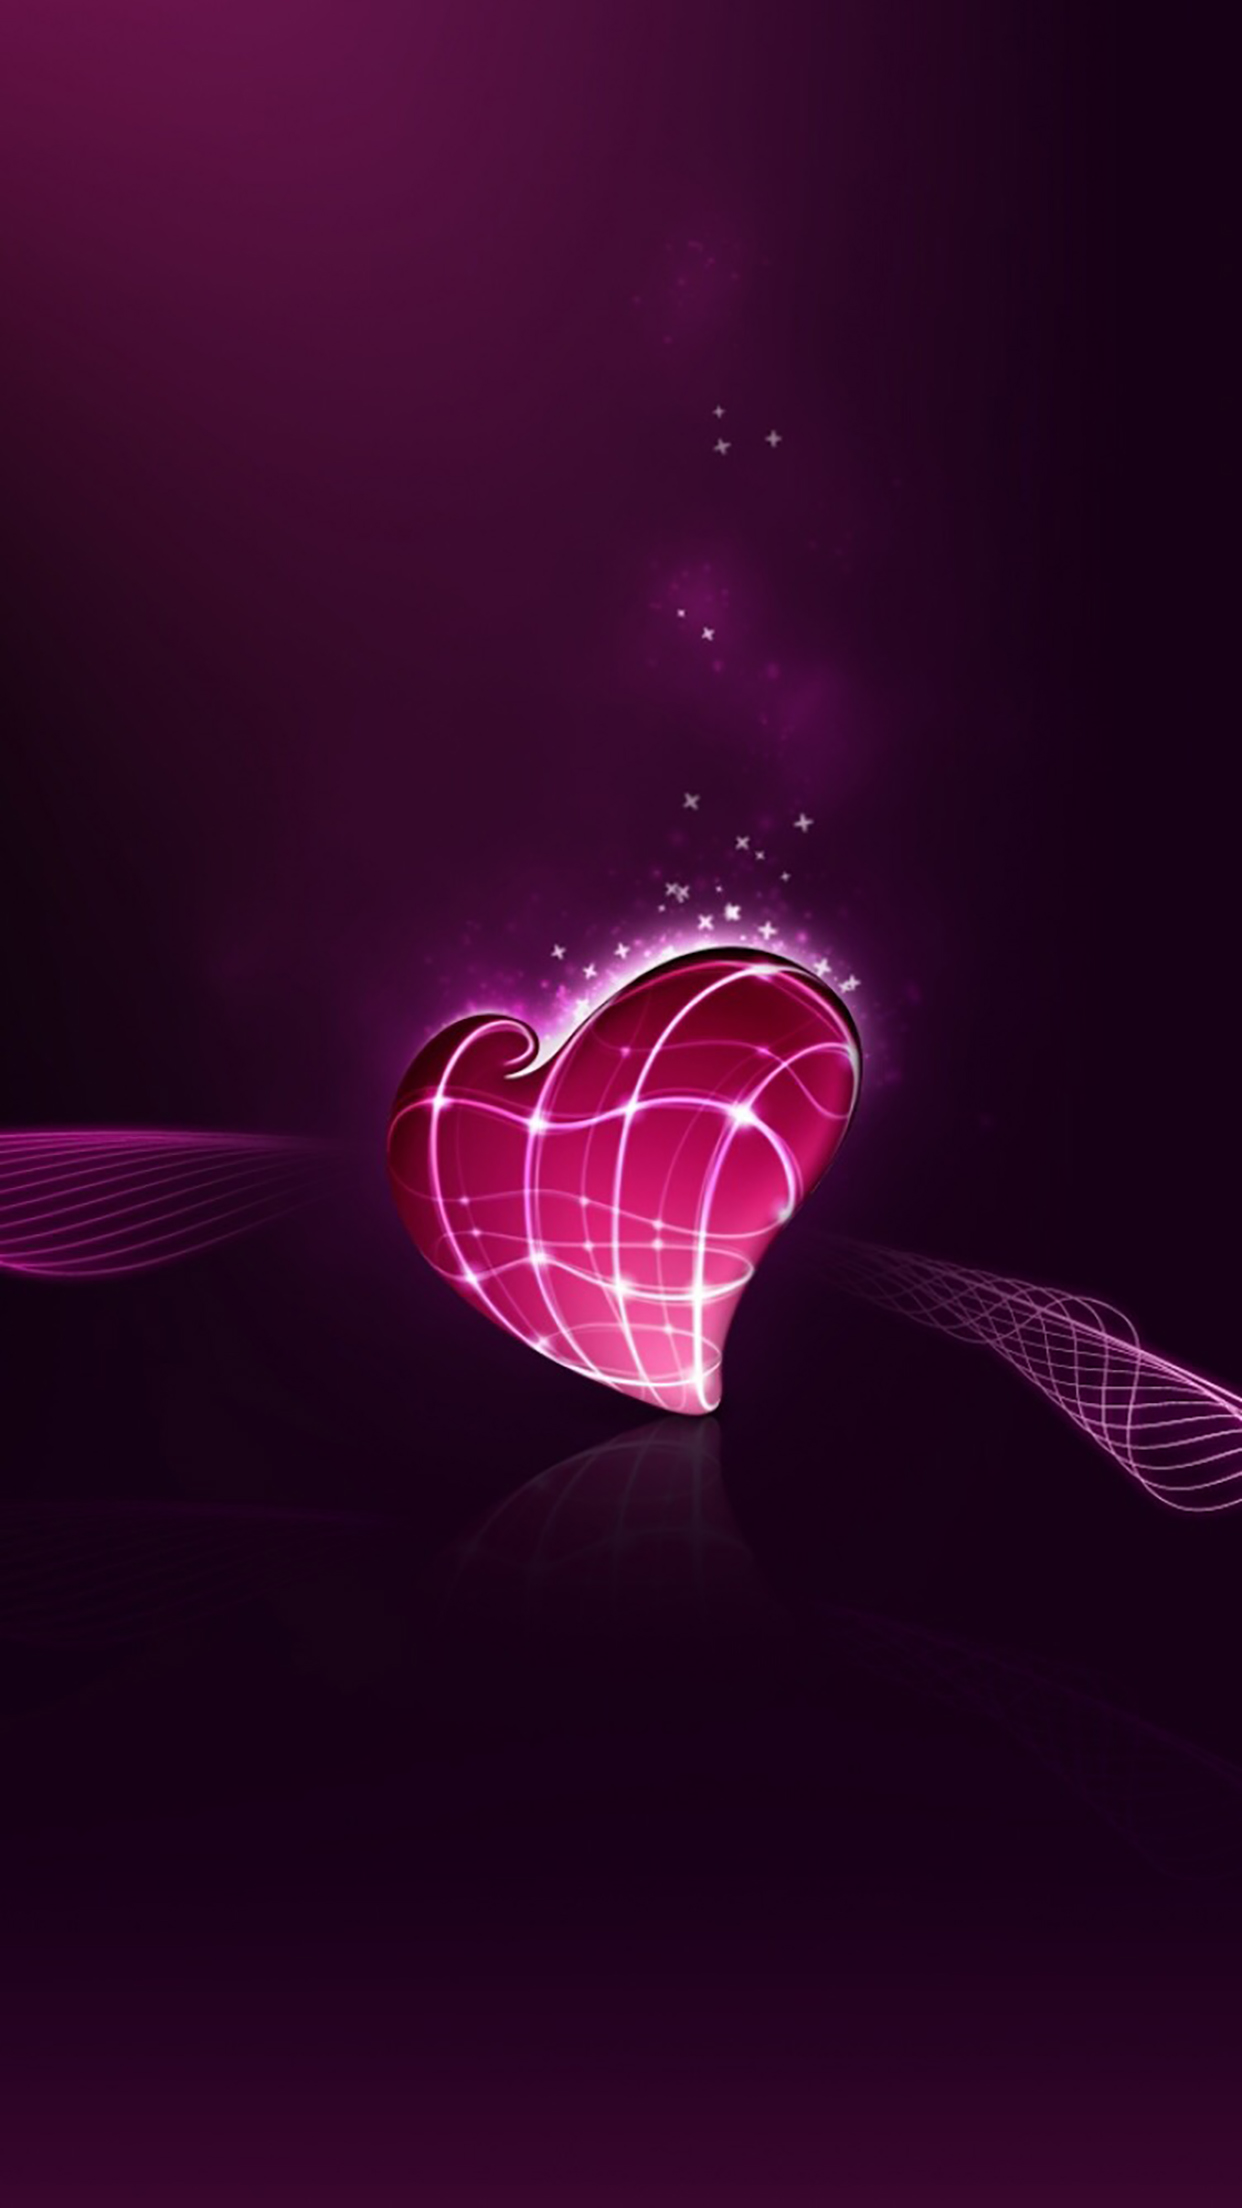 Heart One Heart 3Wallpapers iPhone Parallax Heart : One Heart